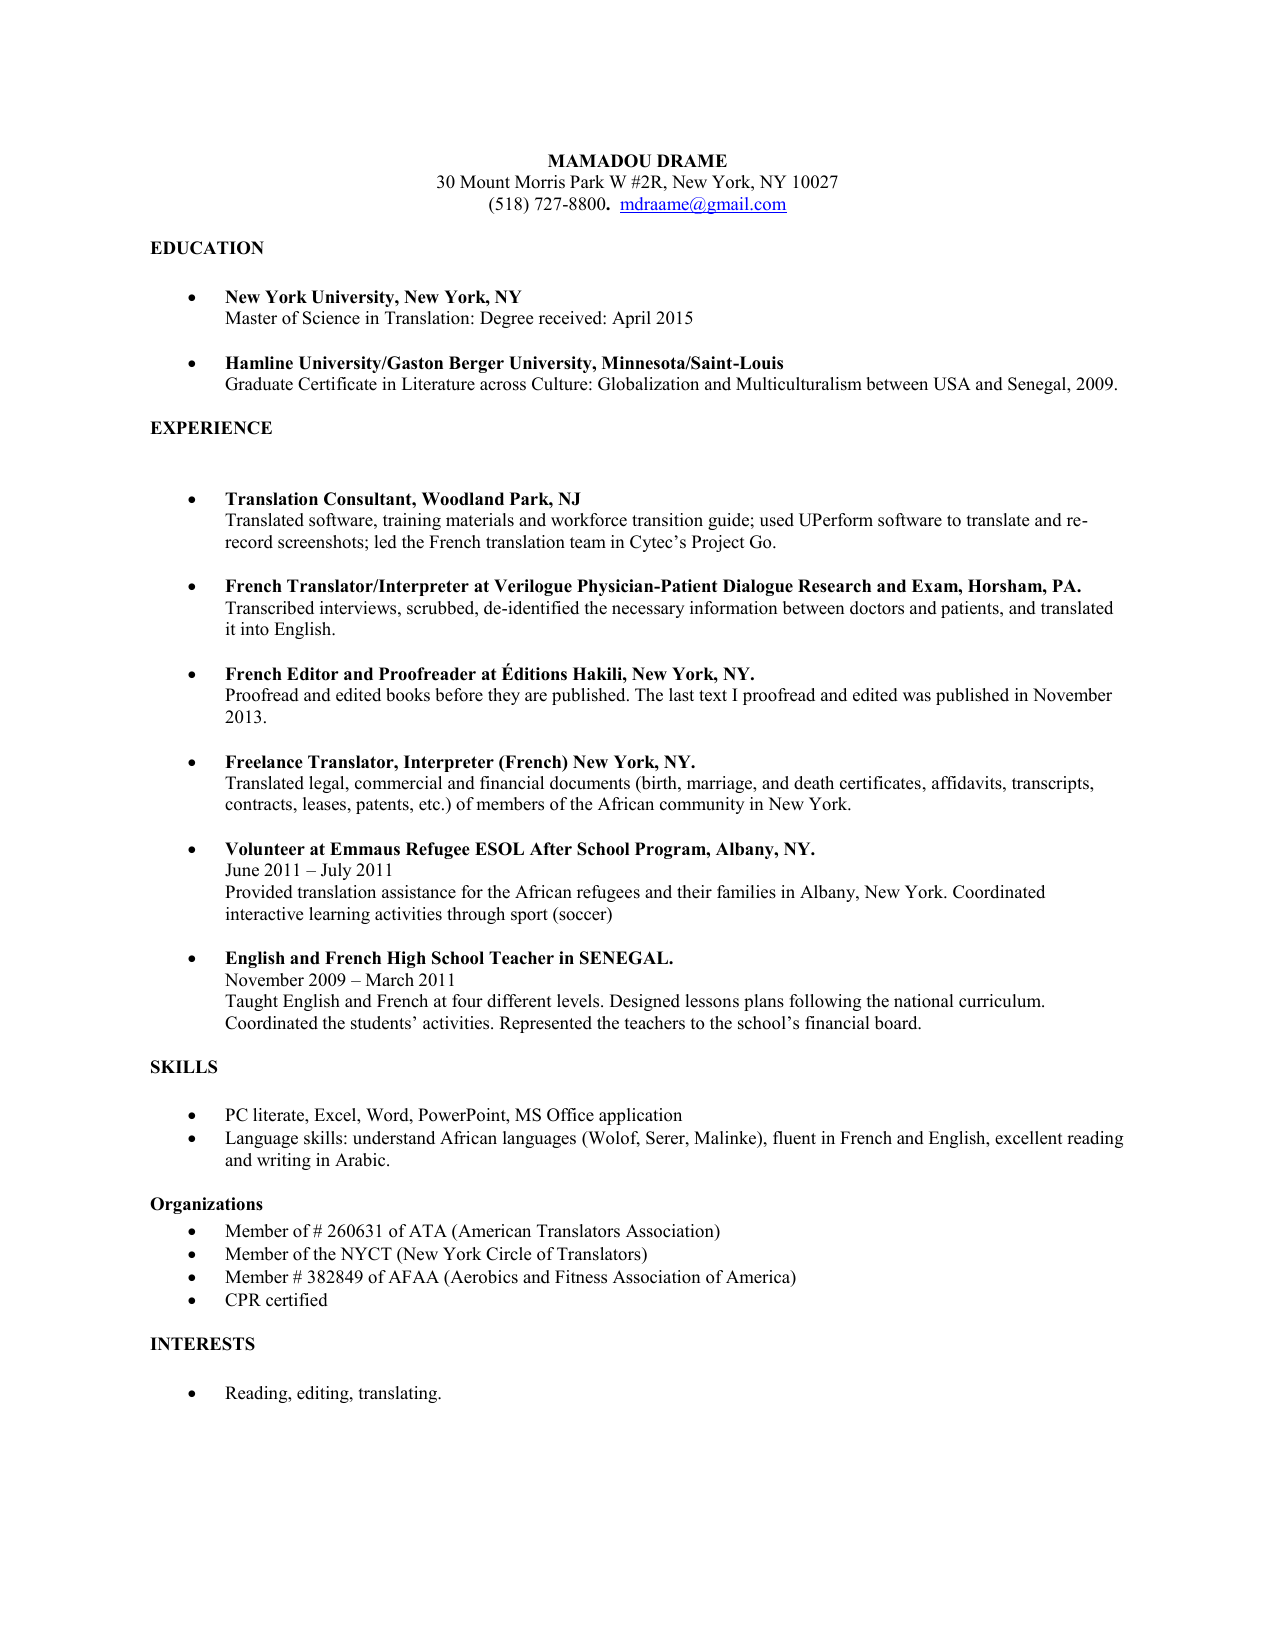 Show My Resume New York Circle Of Translators